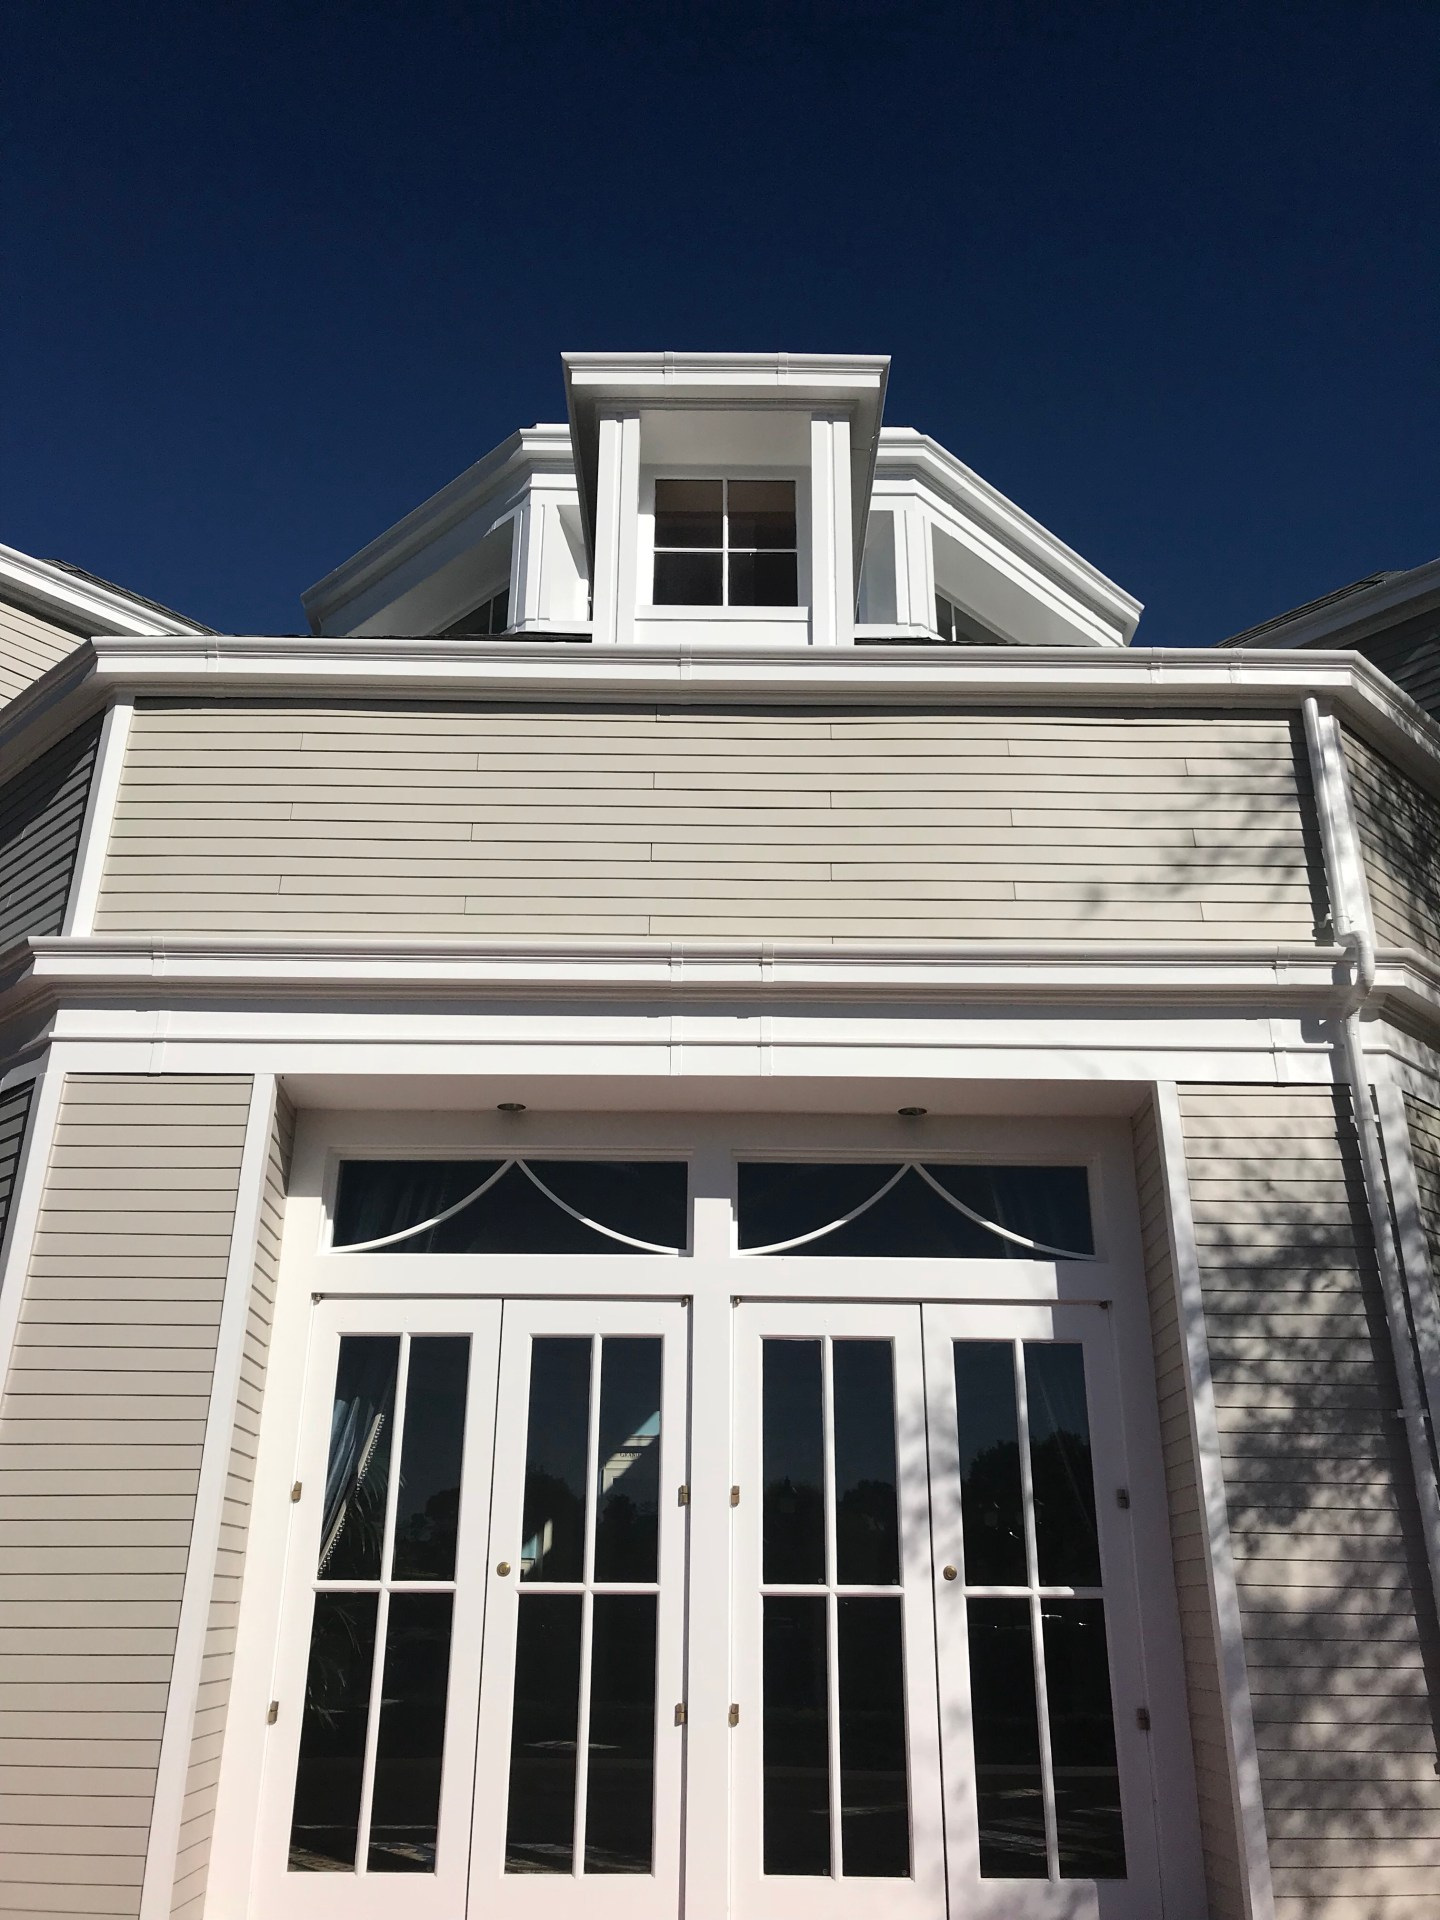 arched-muntins-transom-windows-over-doors-disney